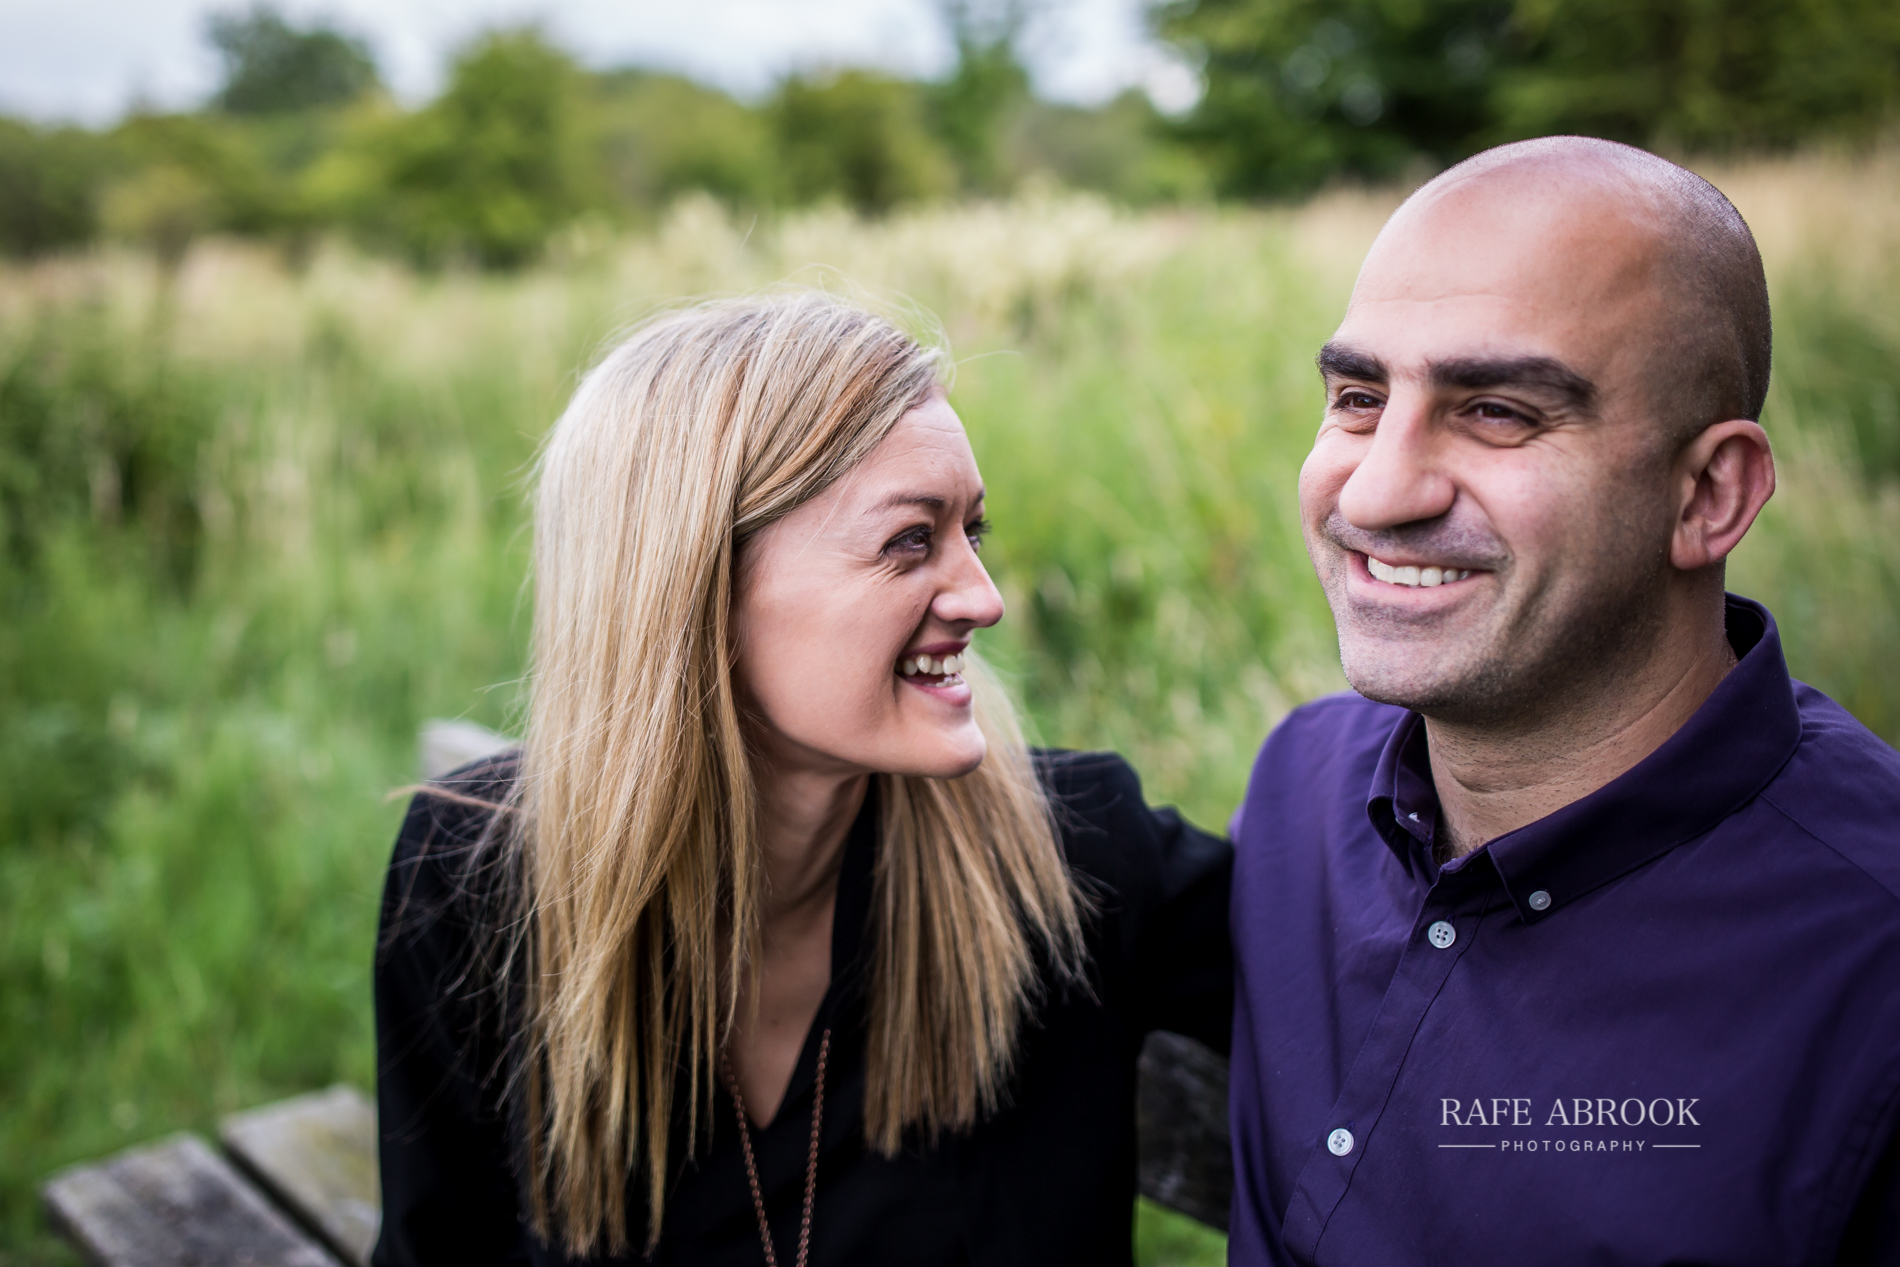 abigail & onur engagement shoot oughtonhead common hitchin hertfordshire-1020.jpg